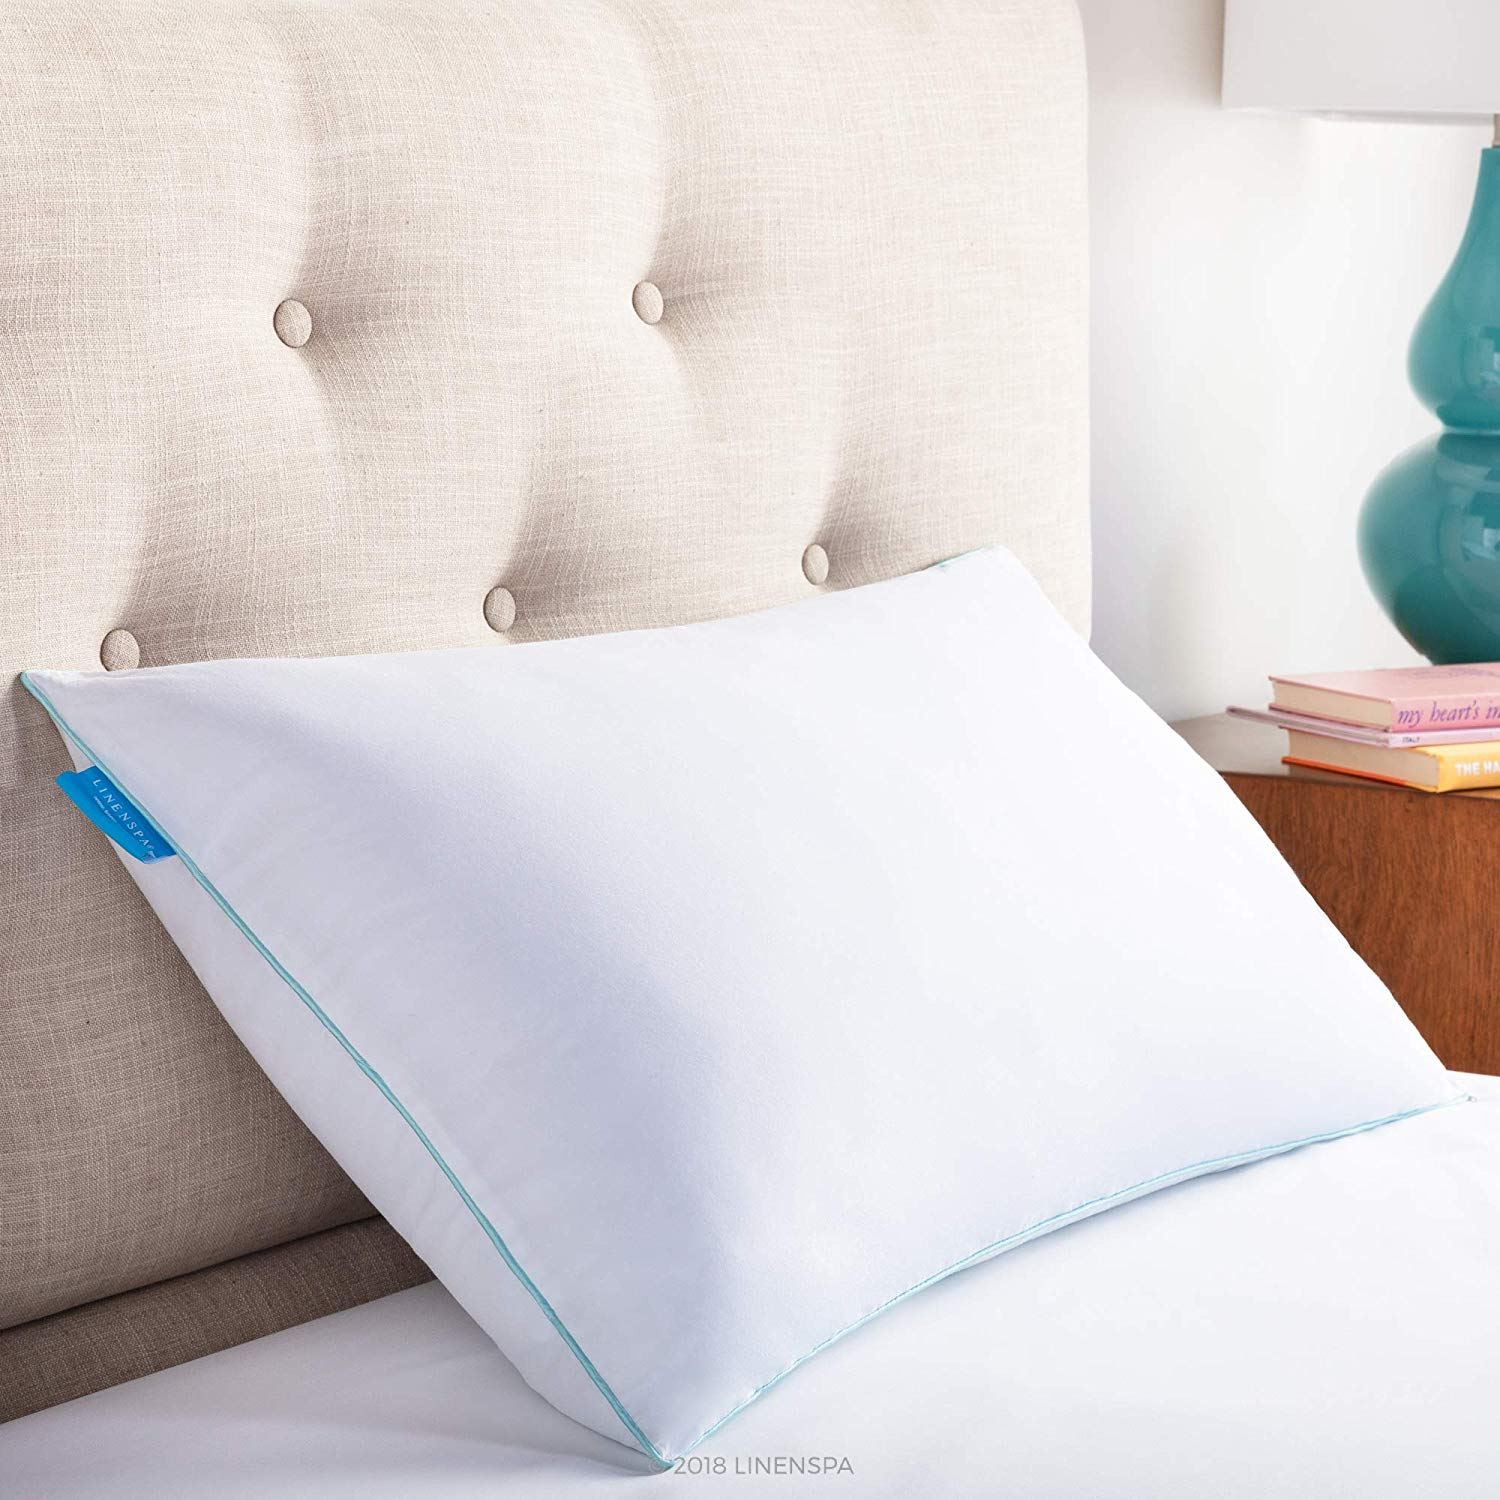 LinenSpa Gel Pillow Review by www.snoremagazine.com